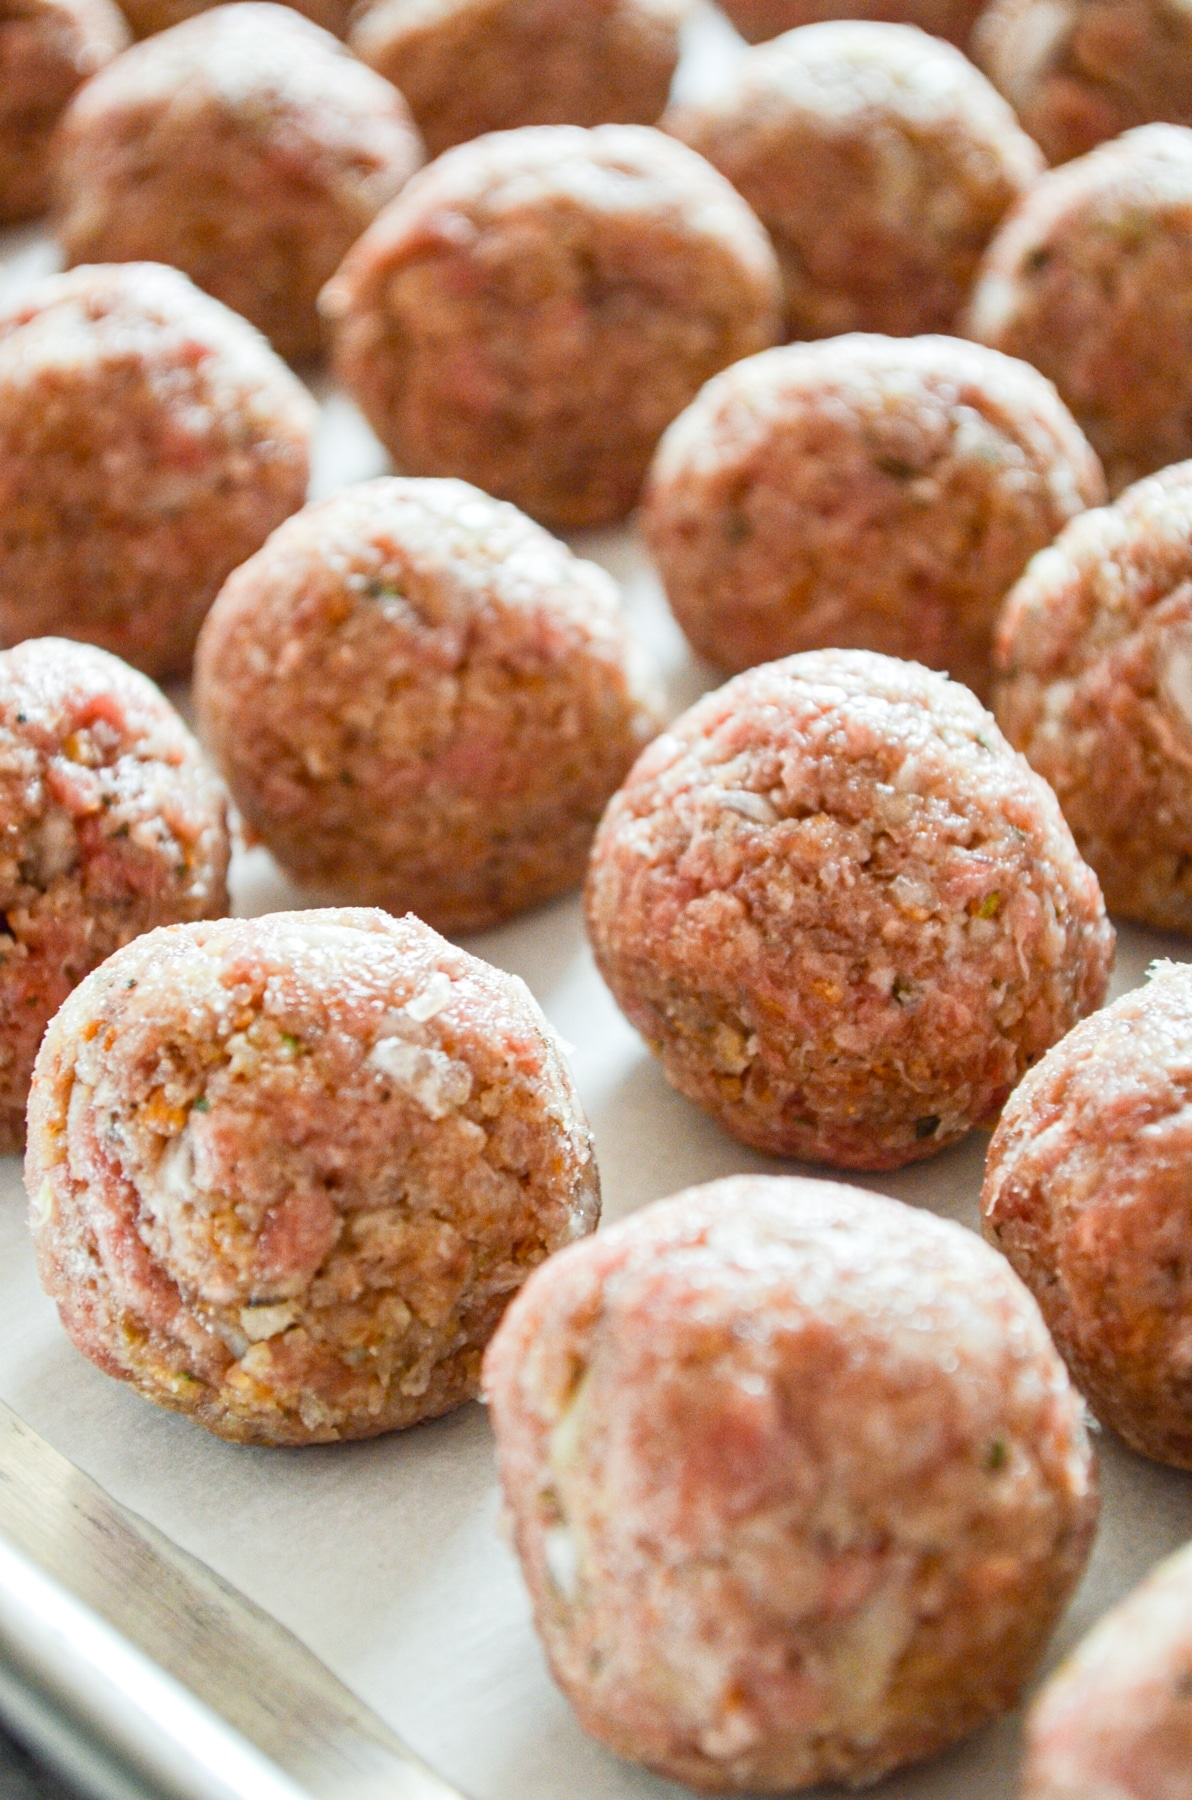 A tray full of meatballs.